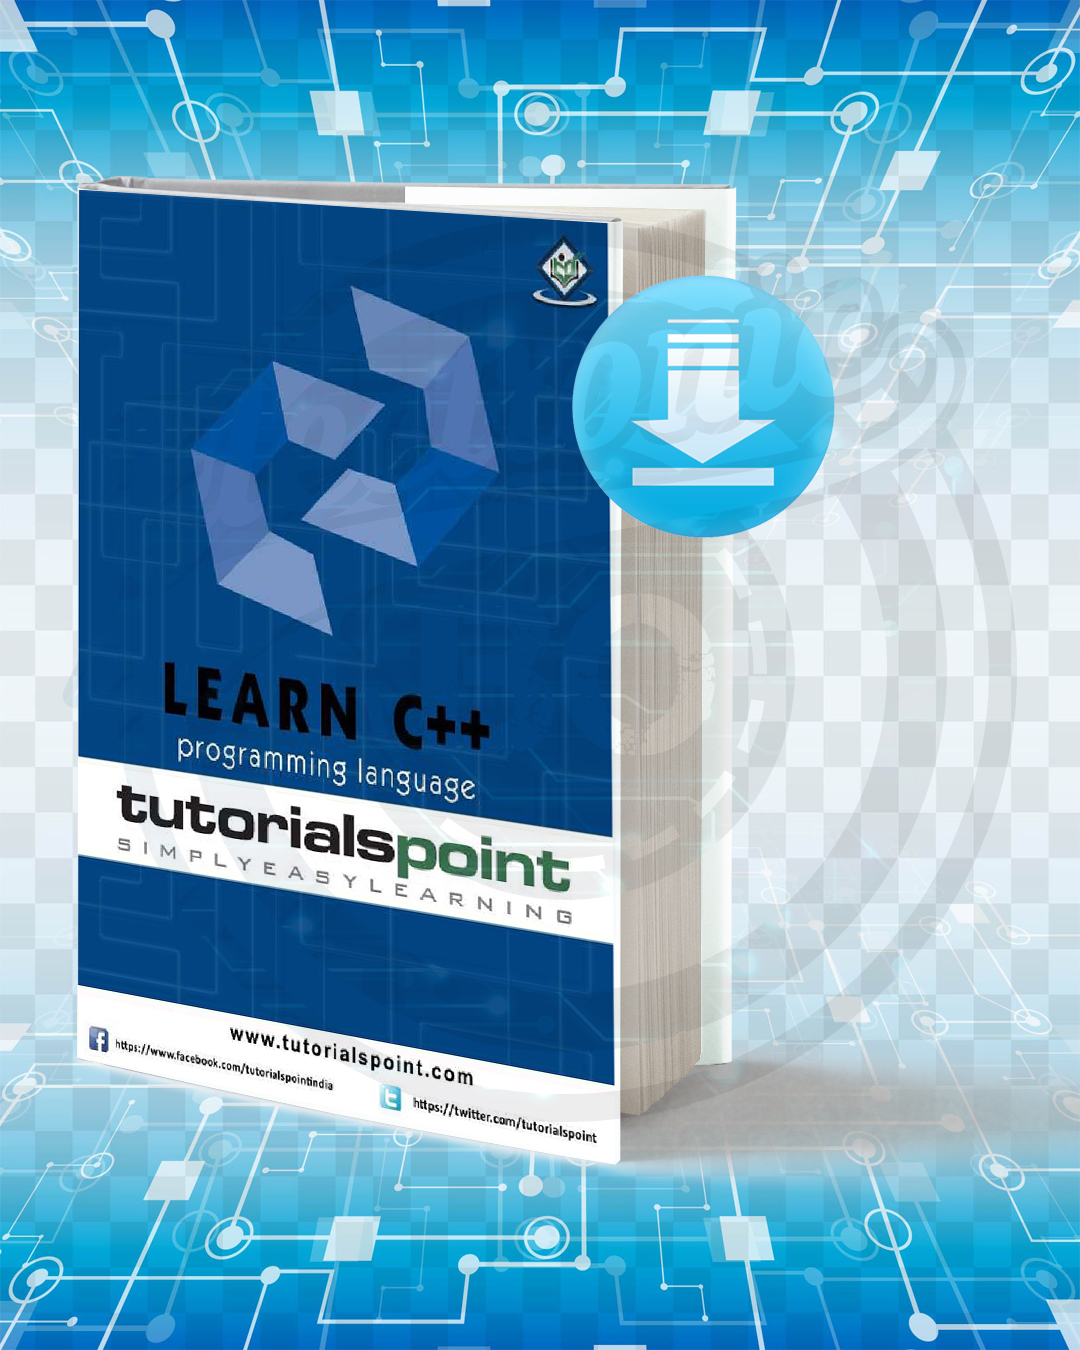 Easily c language pdf to learn how